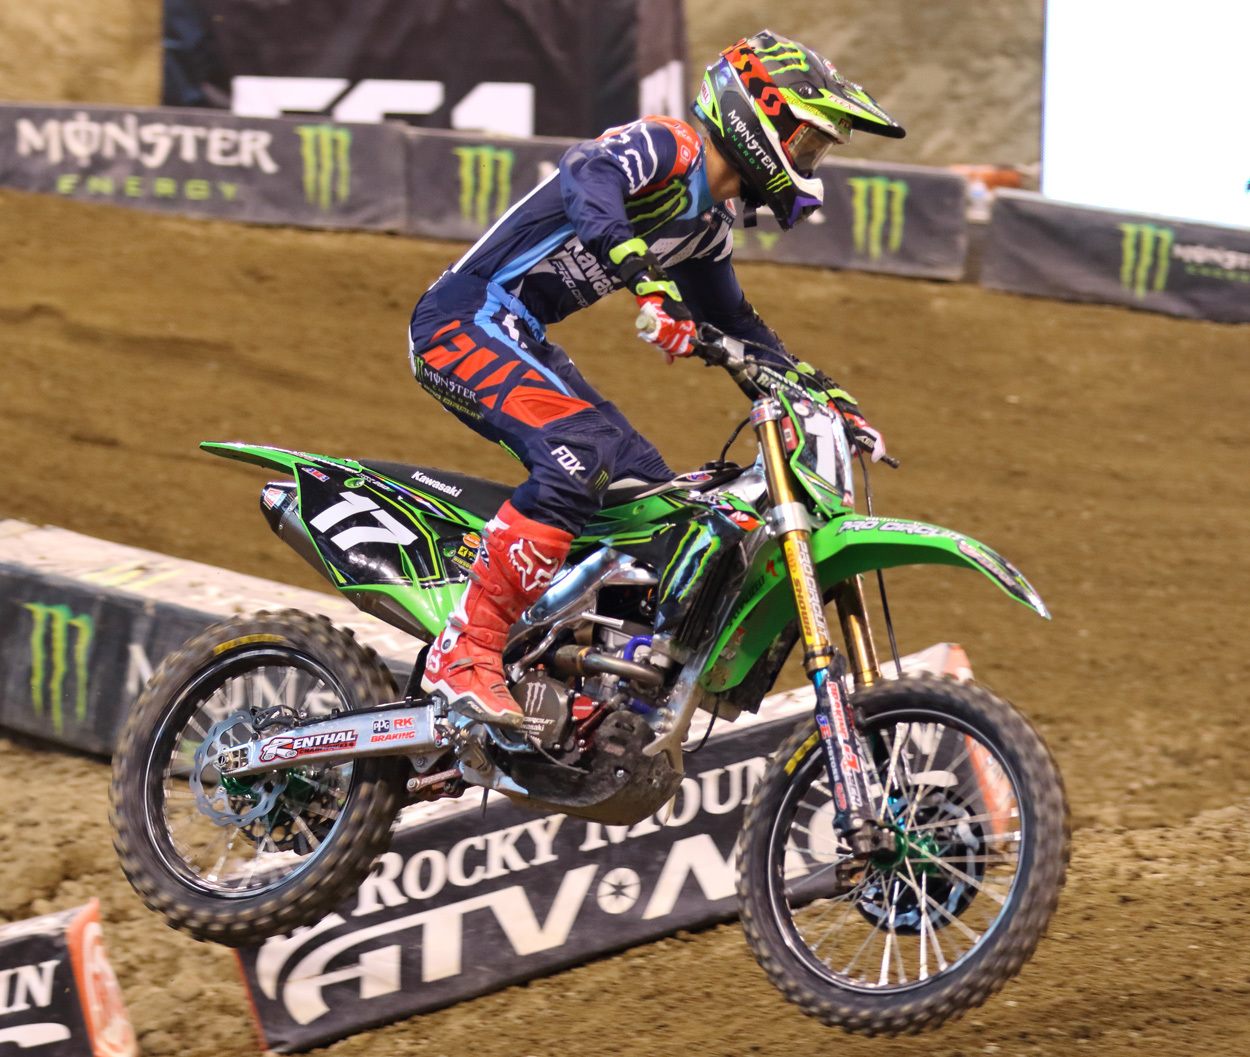 2017 Monster Energy Supercross Indianapolice_d0091546_08392952.jpg